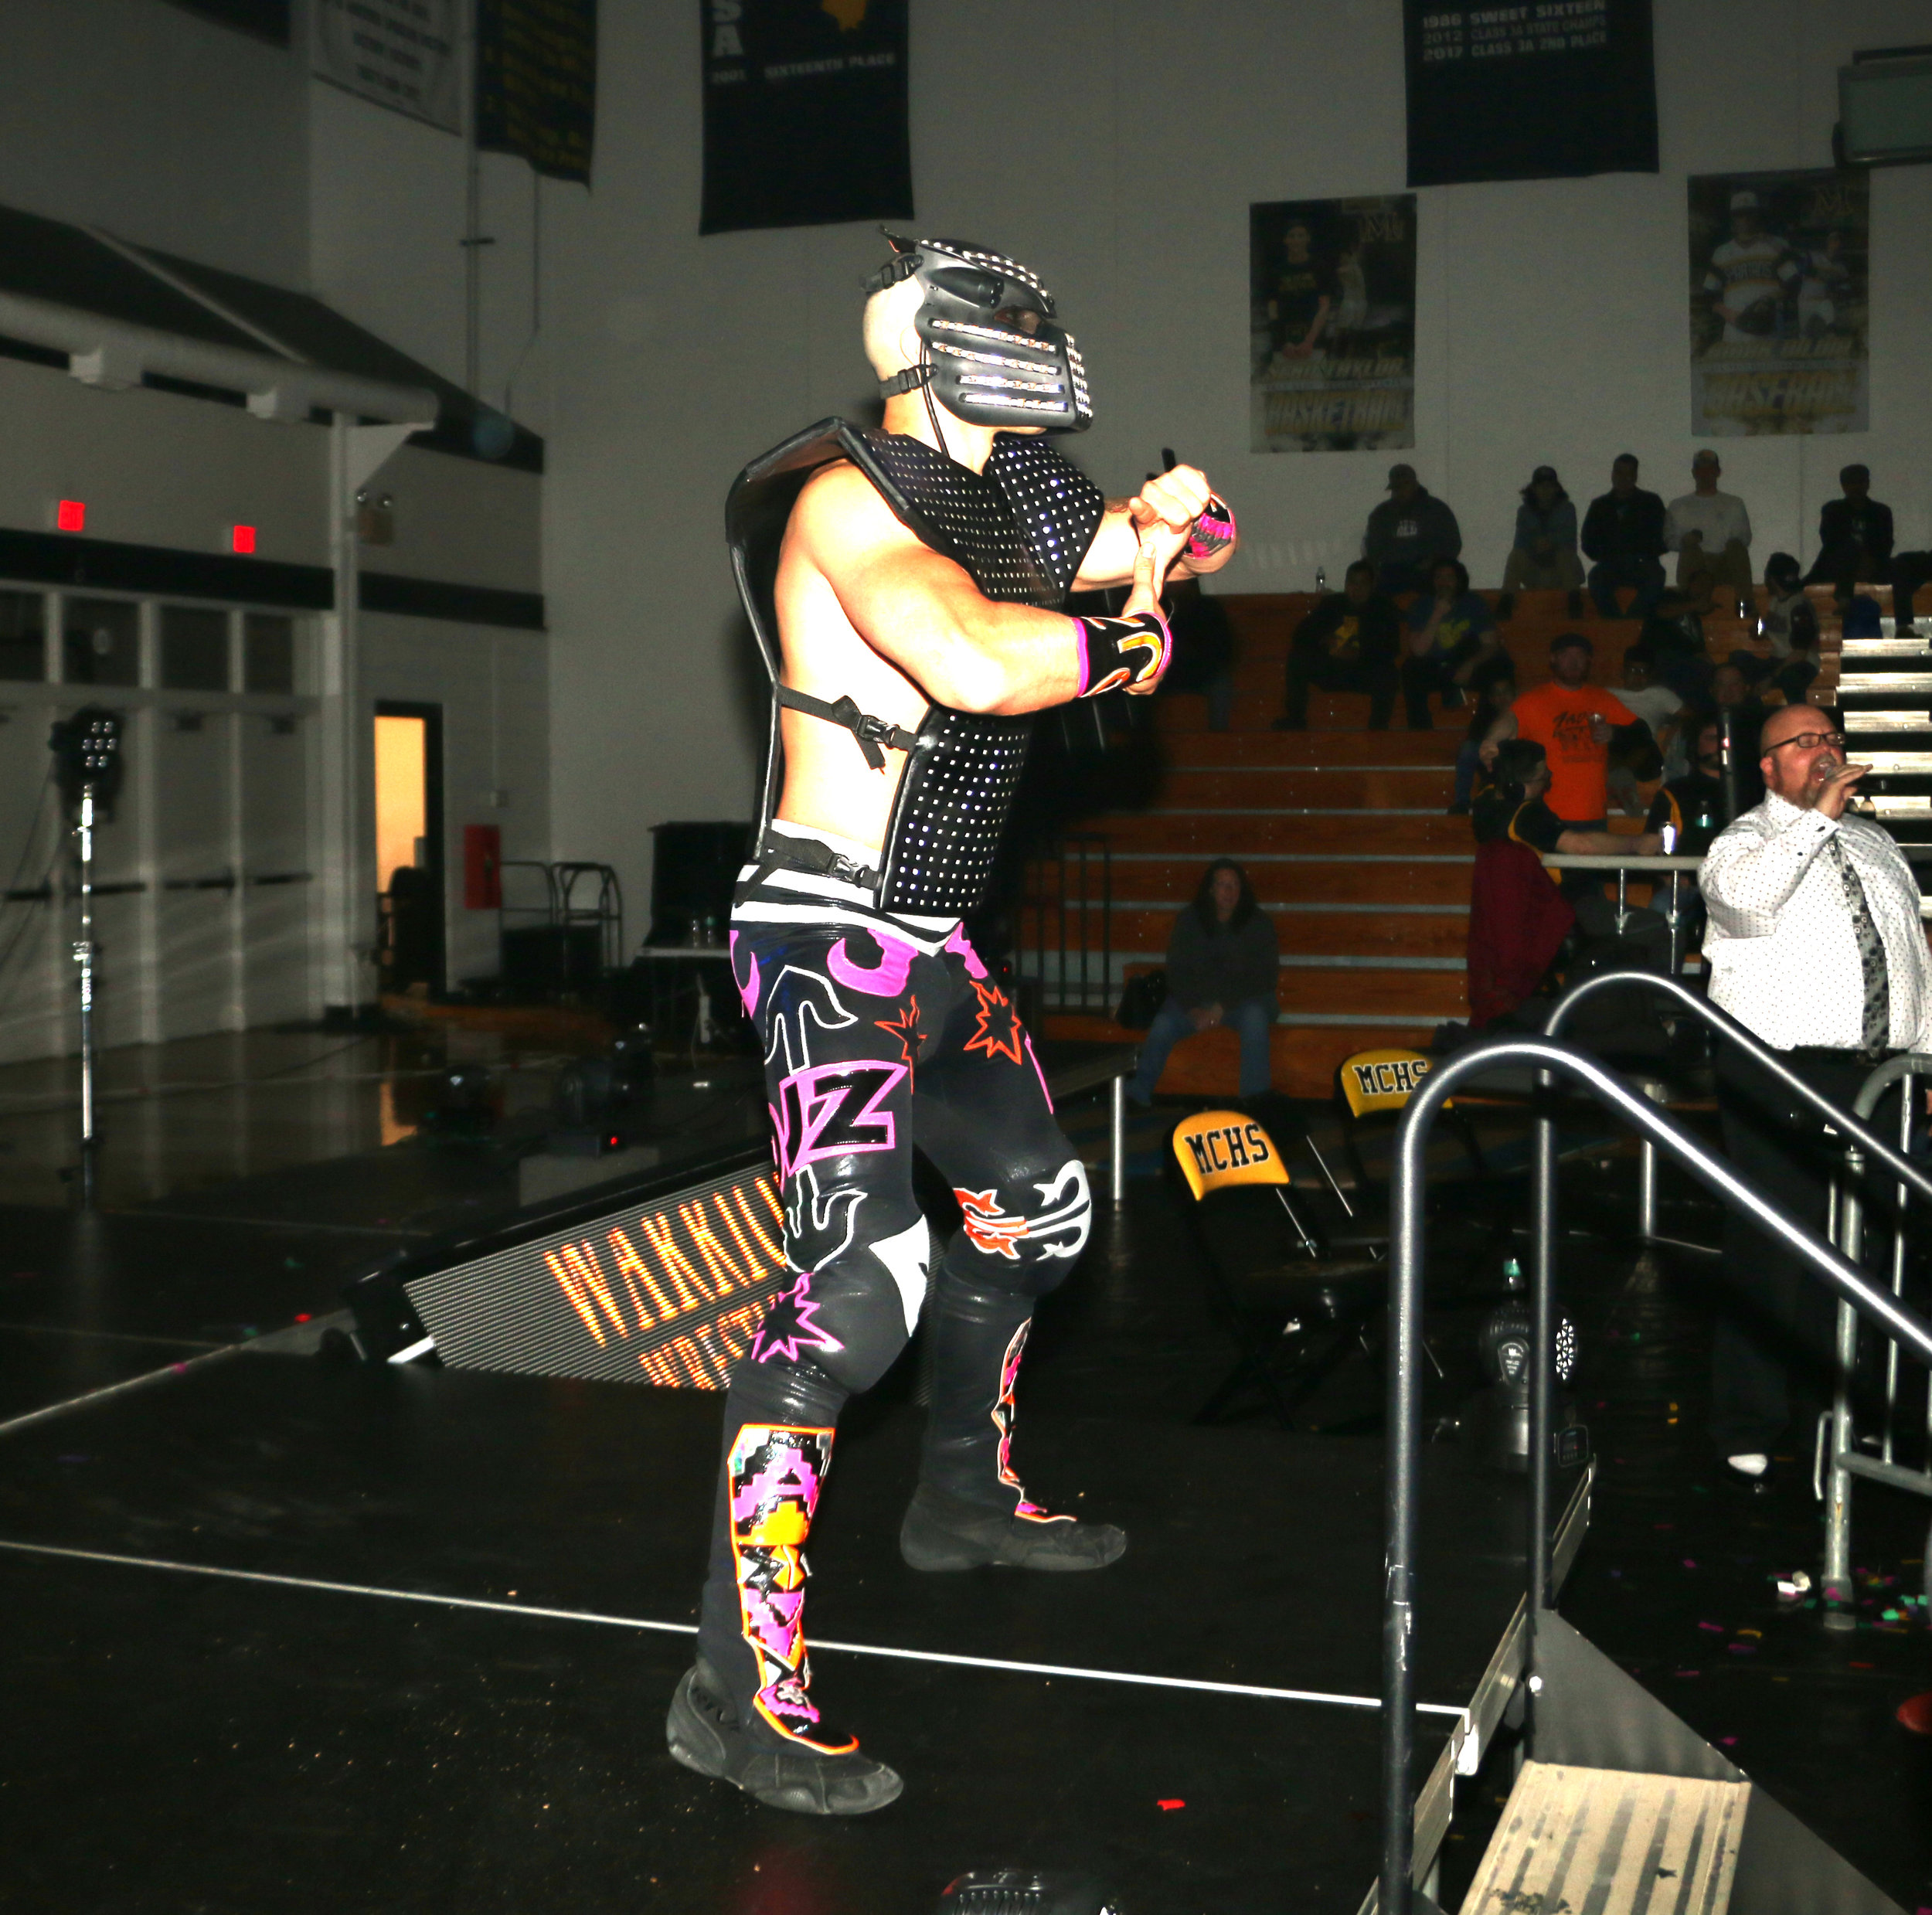 DJZ enters the arena for his match with Sammy Guevara.